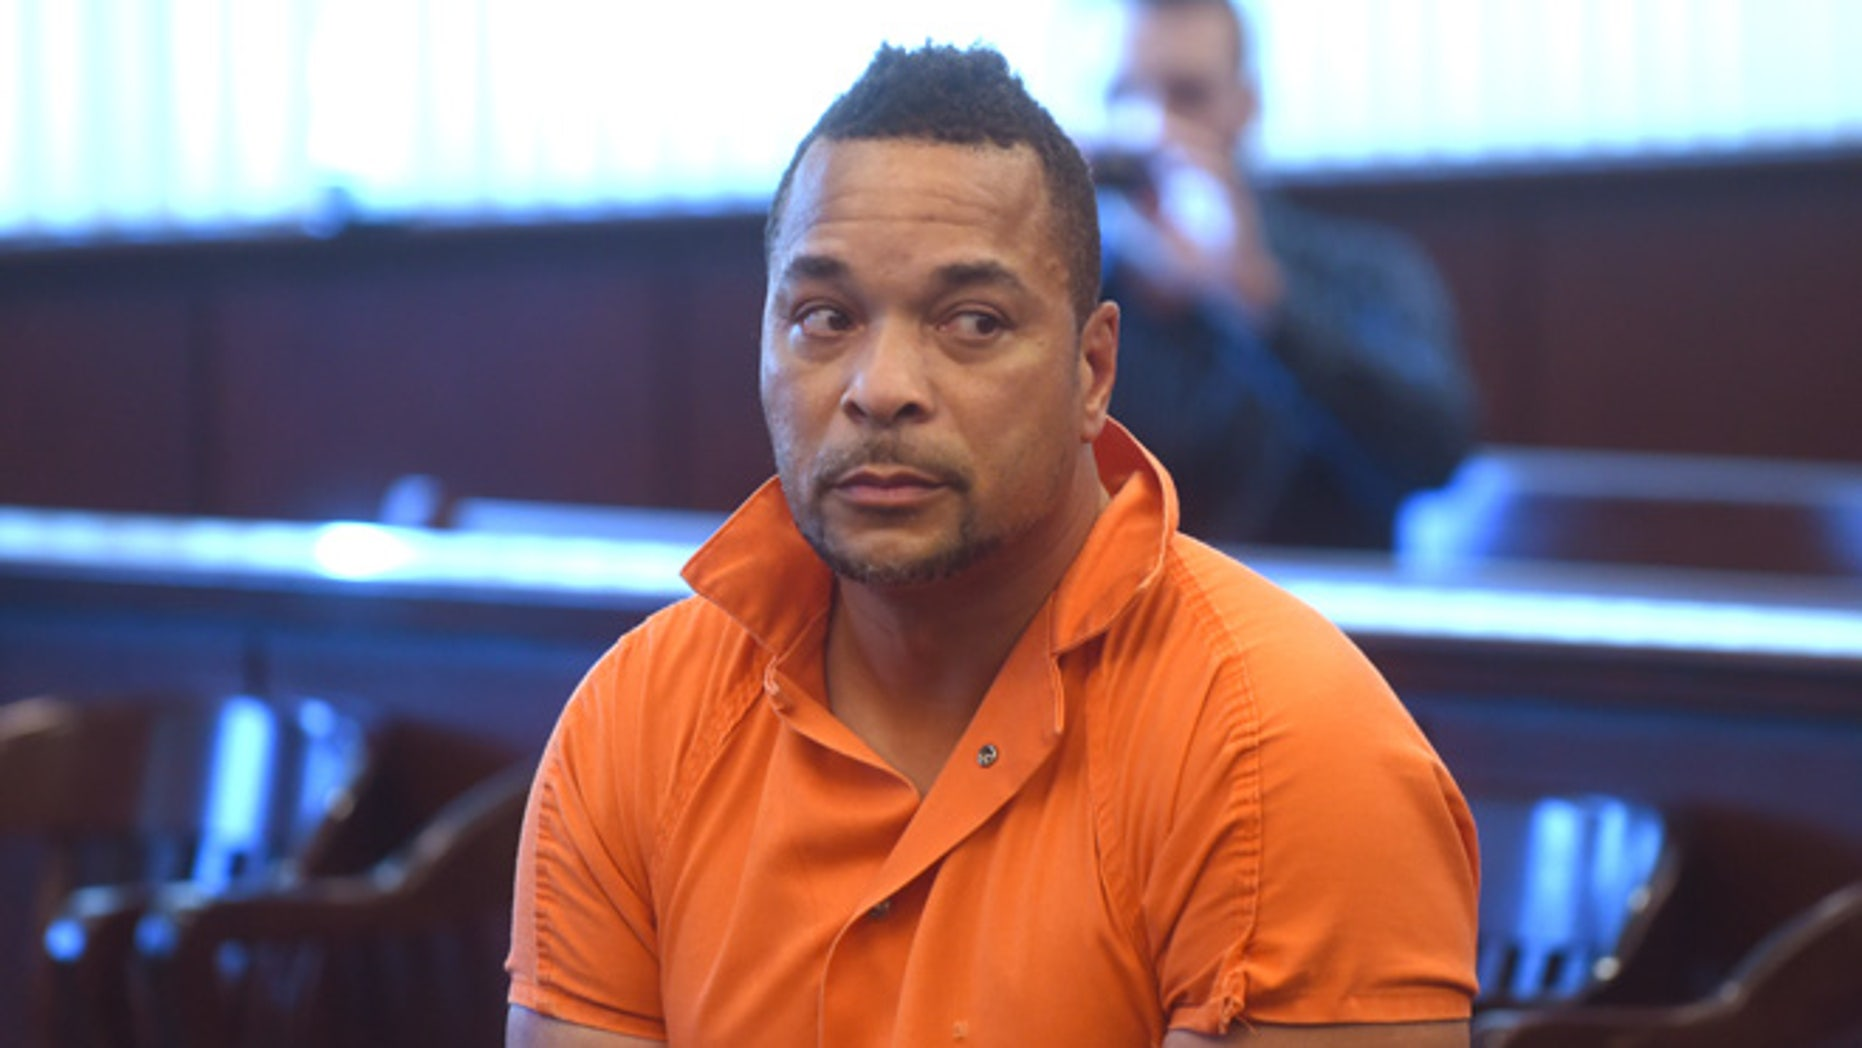 Gregory Green is arraigned in 20th District Court in Dearborn Heights, Mich., on Thursday Sept. 22, 2016.  Green is suspected of killing two young children and two teenagers and critically injured his wife at his at his Detroit-area home. (Max Ortiz/The Detroit News via AP)